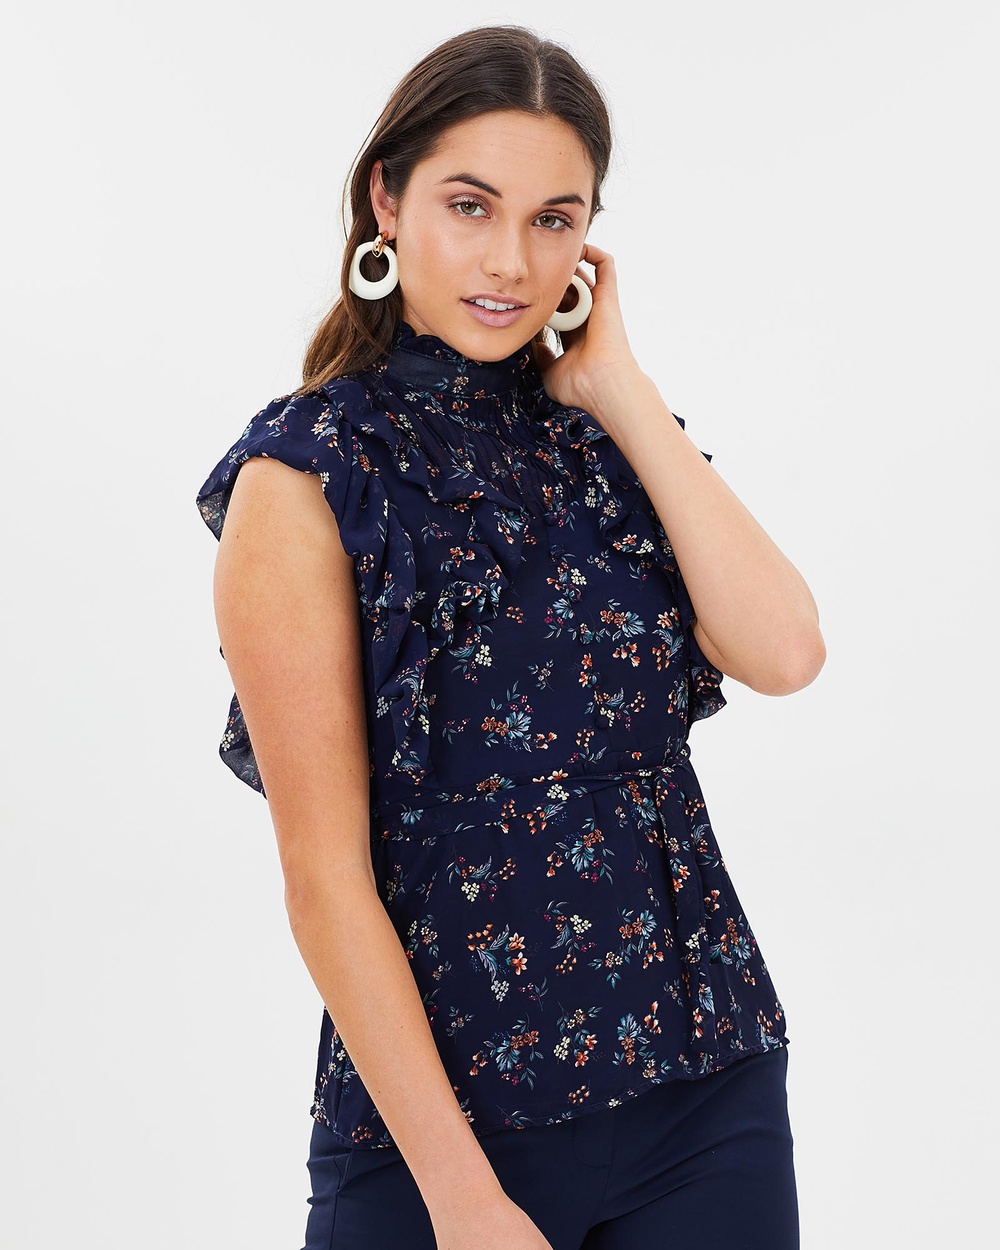 ALPHA-BE The Butterfly Effect Sleeveless Top in Blue Tops Blue The Butterfly Effect Sleeveless Top in Blue